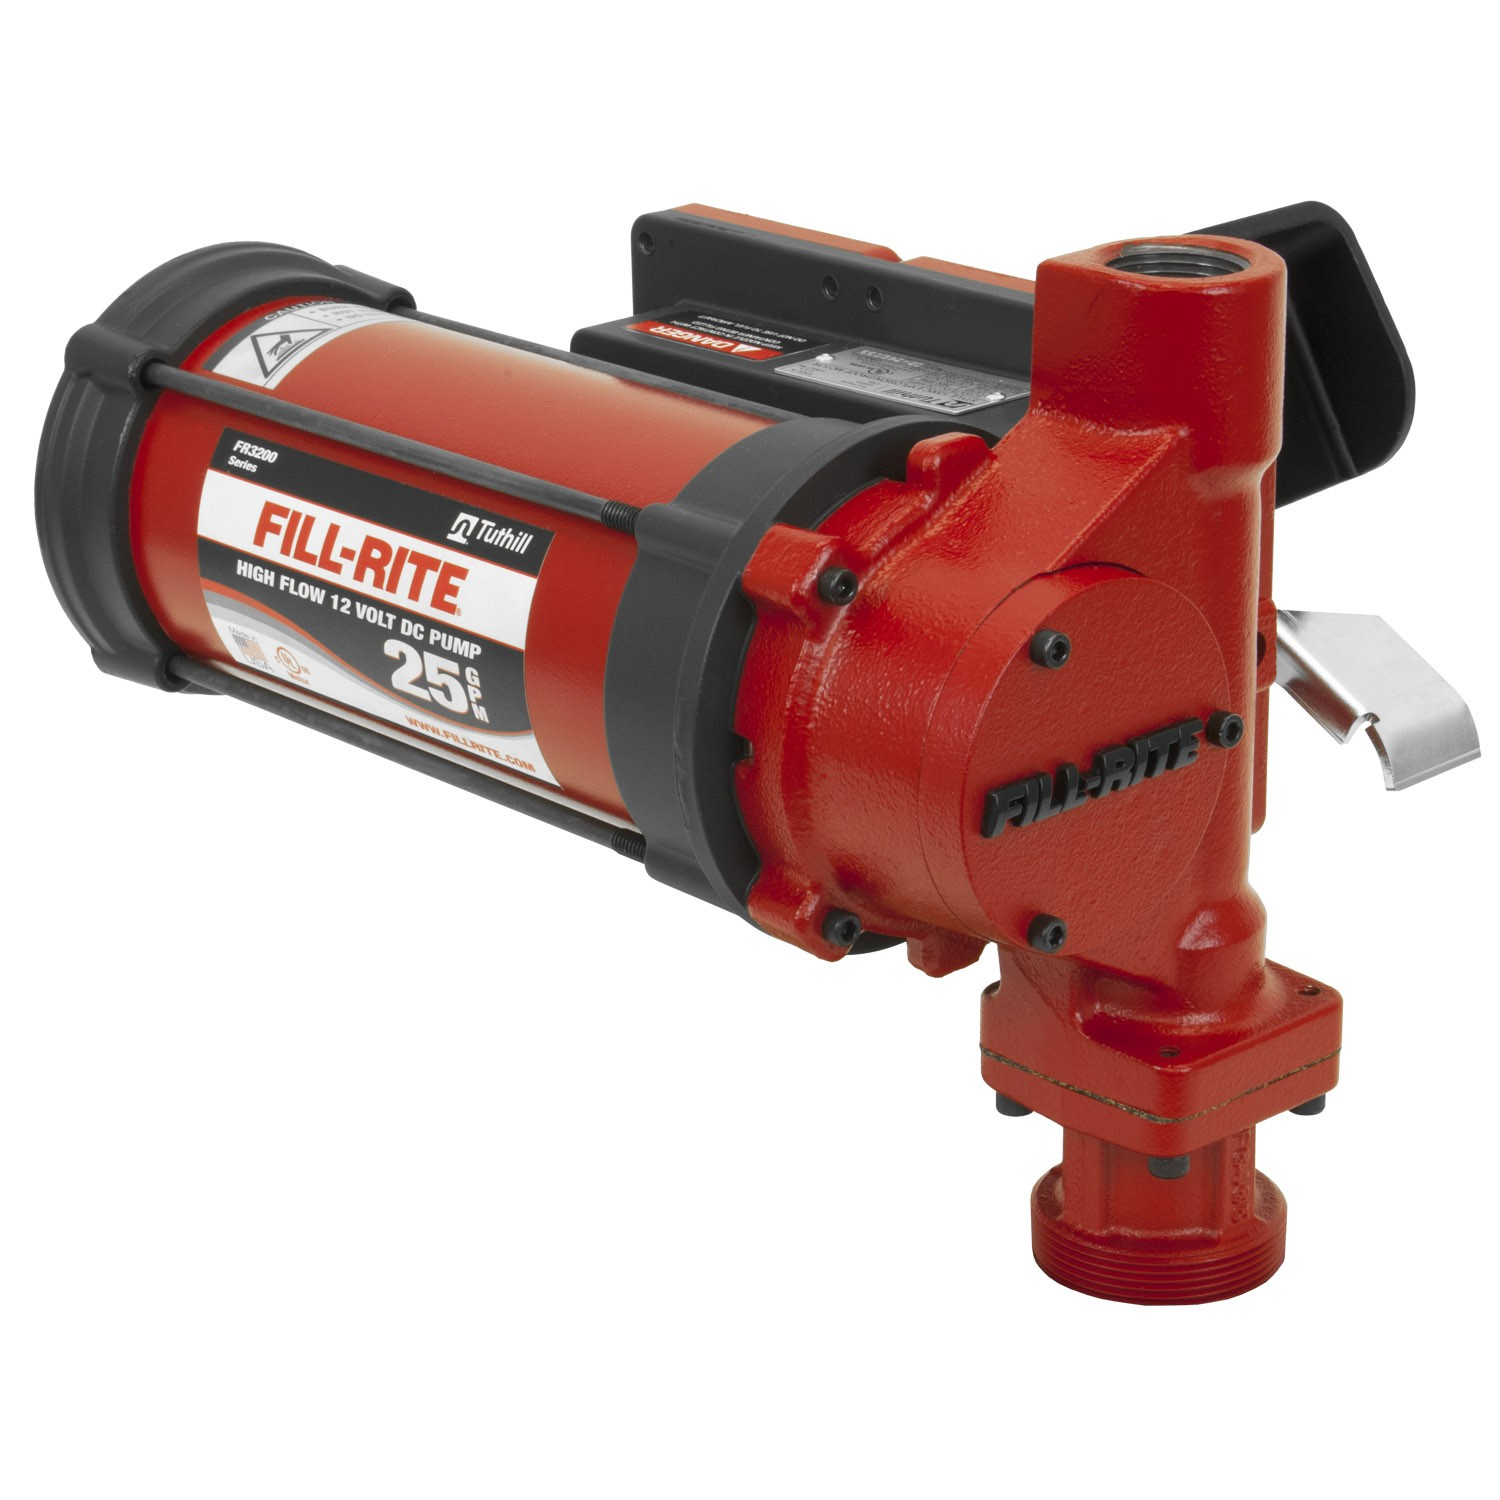 Fill-Rite FR3204 12 Volt DC High Flow Pump (Pump Only) (25 GPM)